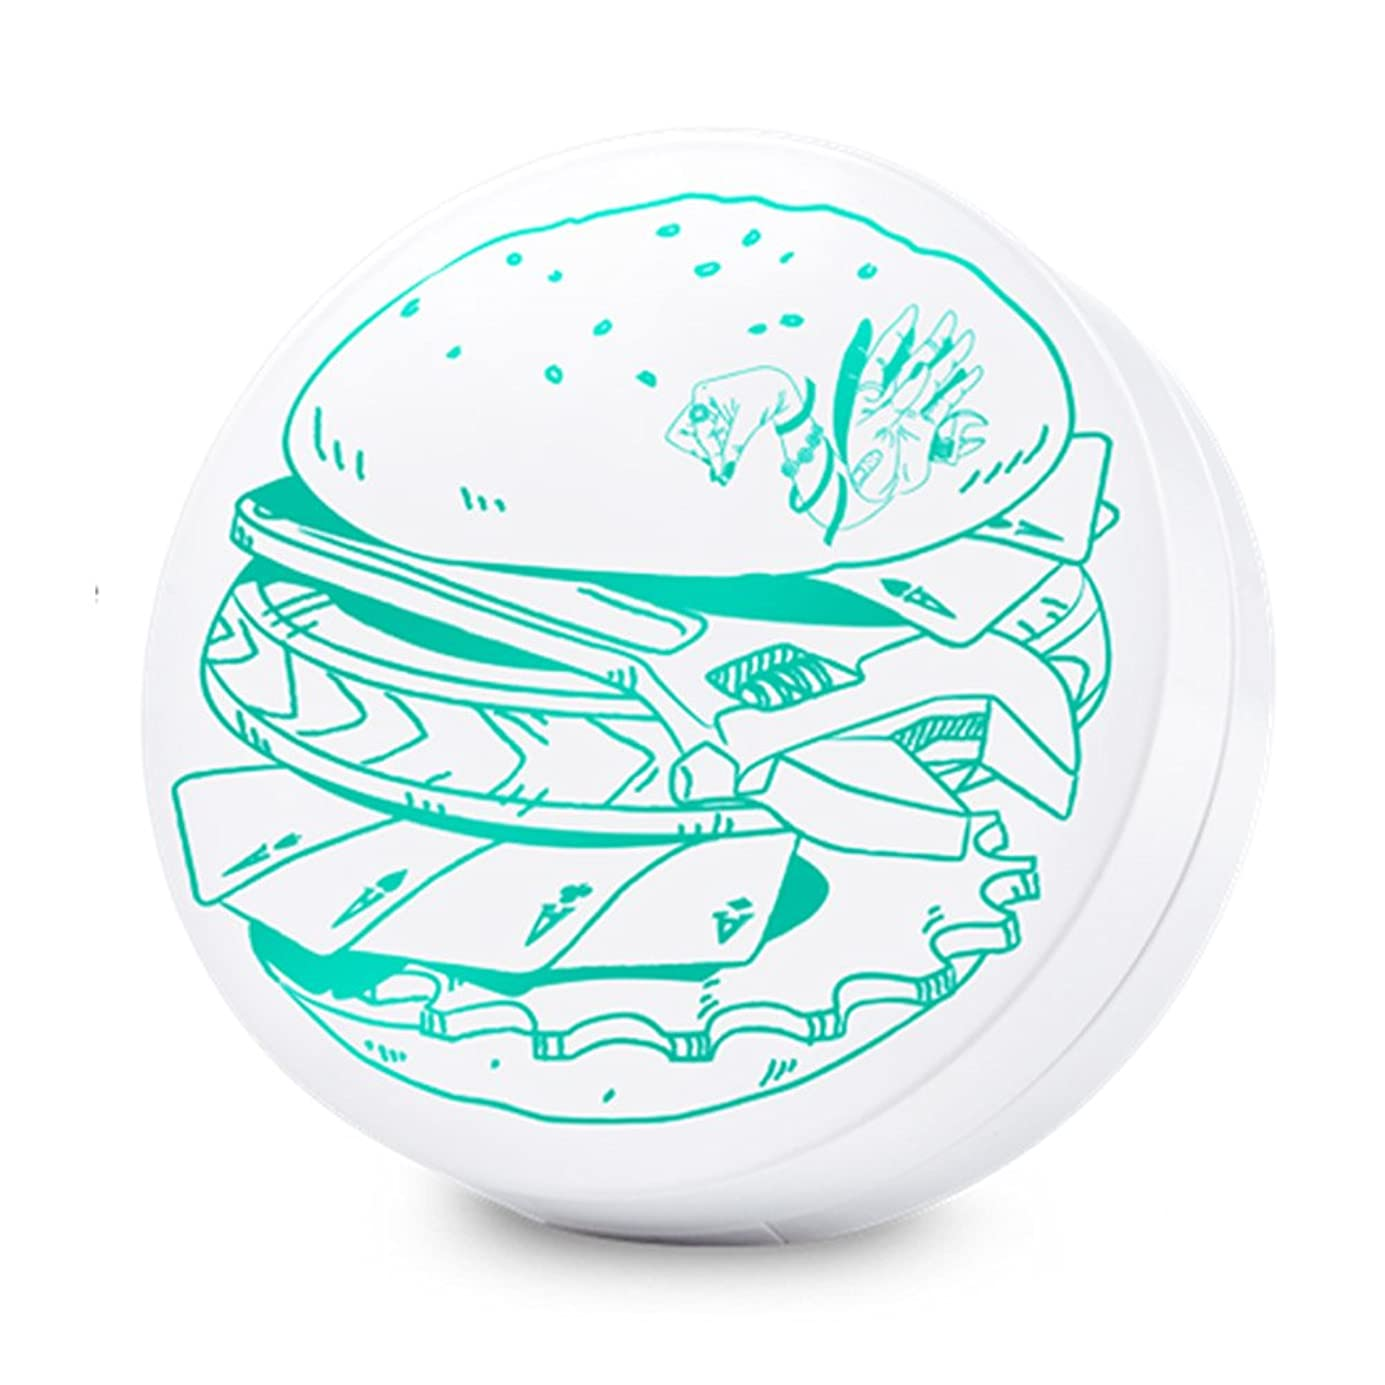 ジーンズバラバラにする穿孔するSwanicoco AC burger Cushion (wt Refill) (Yellow Base)